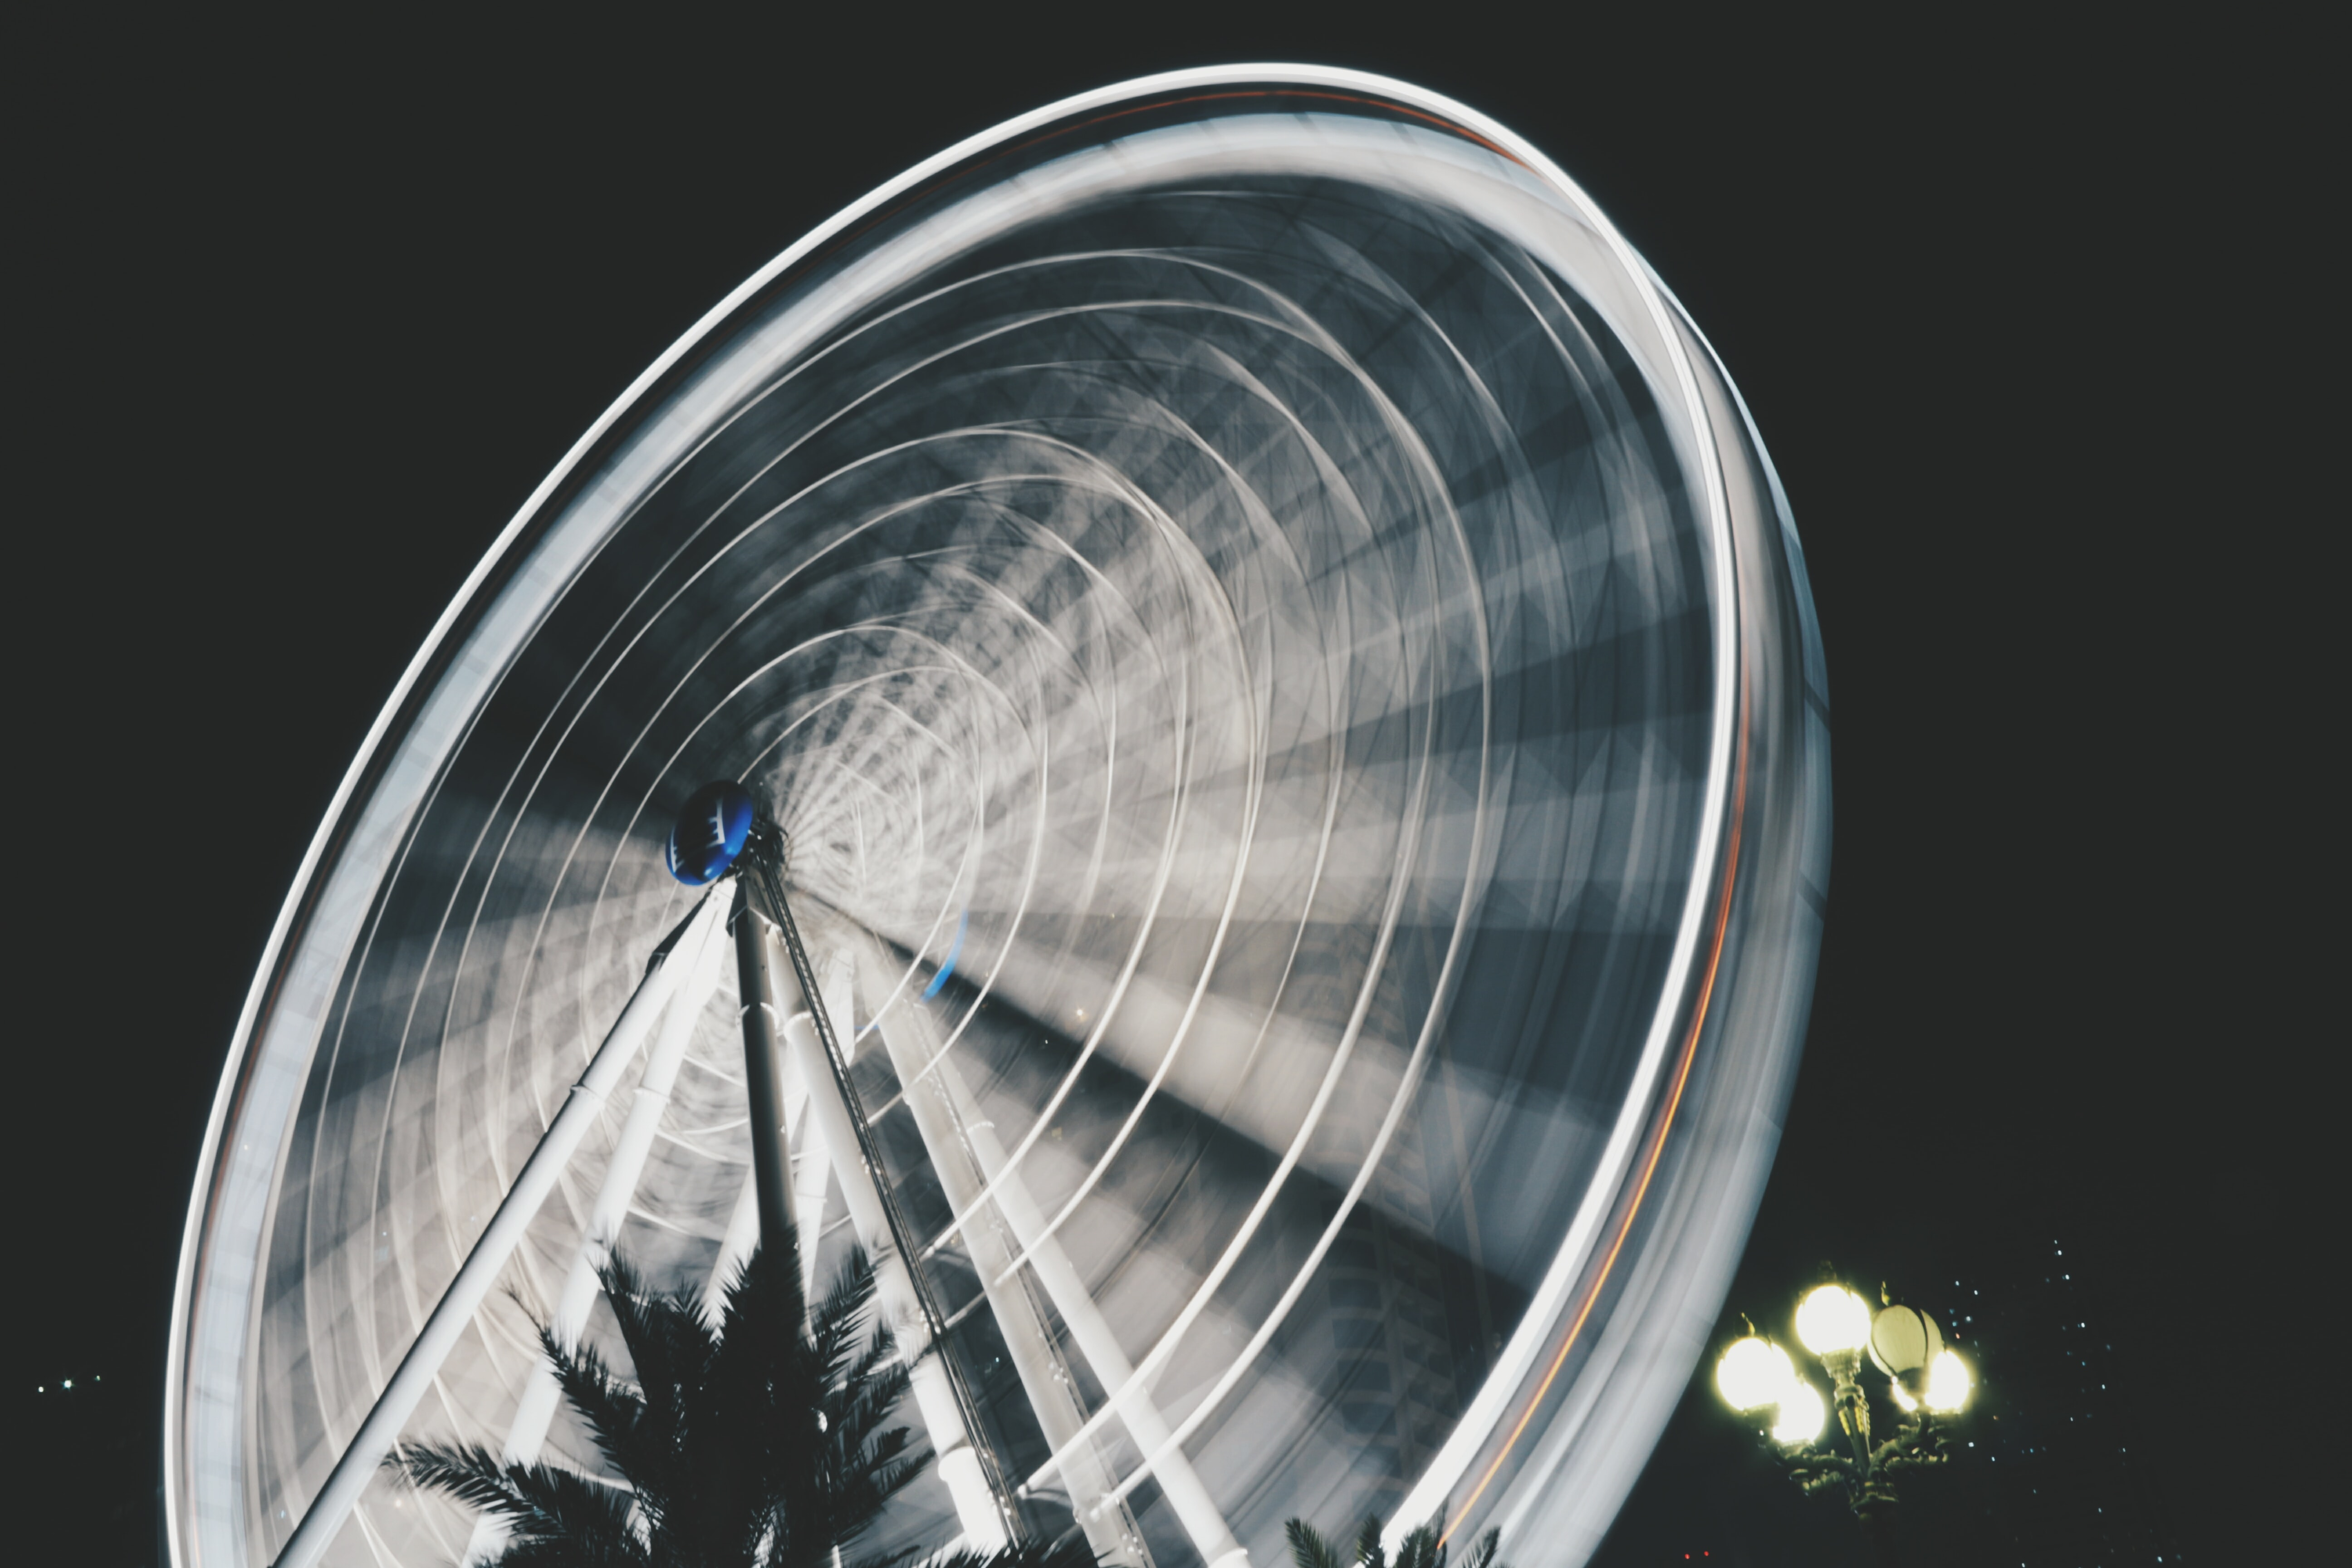 time lapse photography of ferris wheel taken during night time